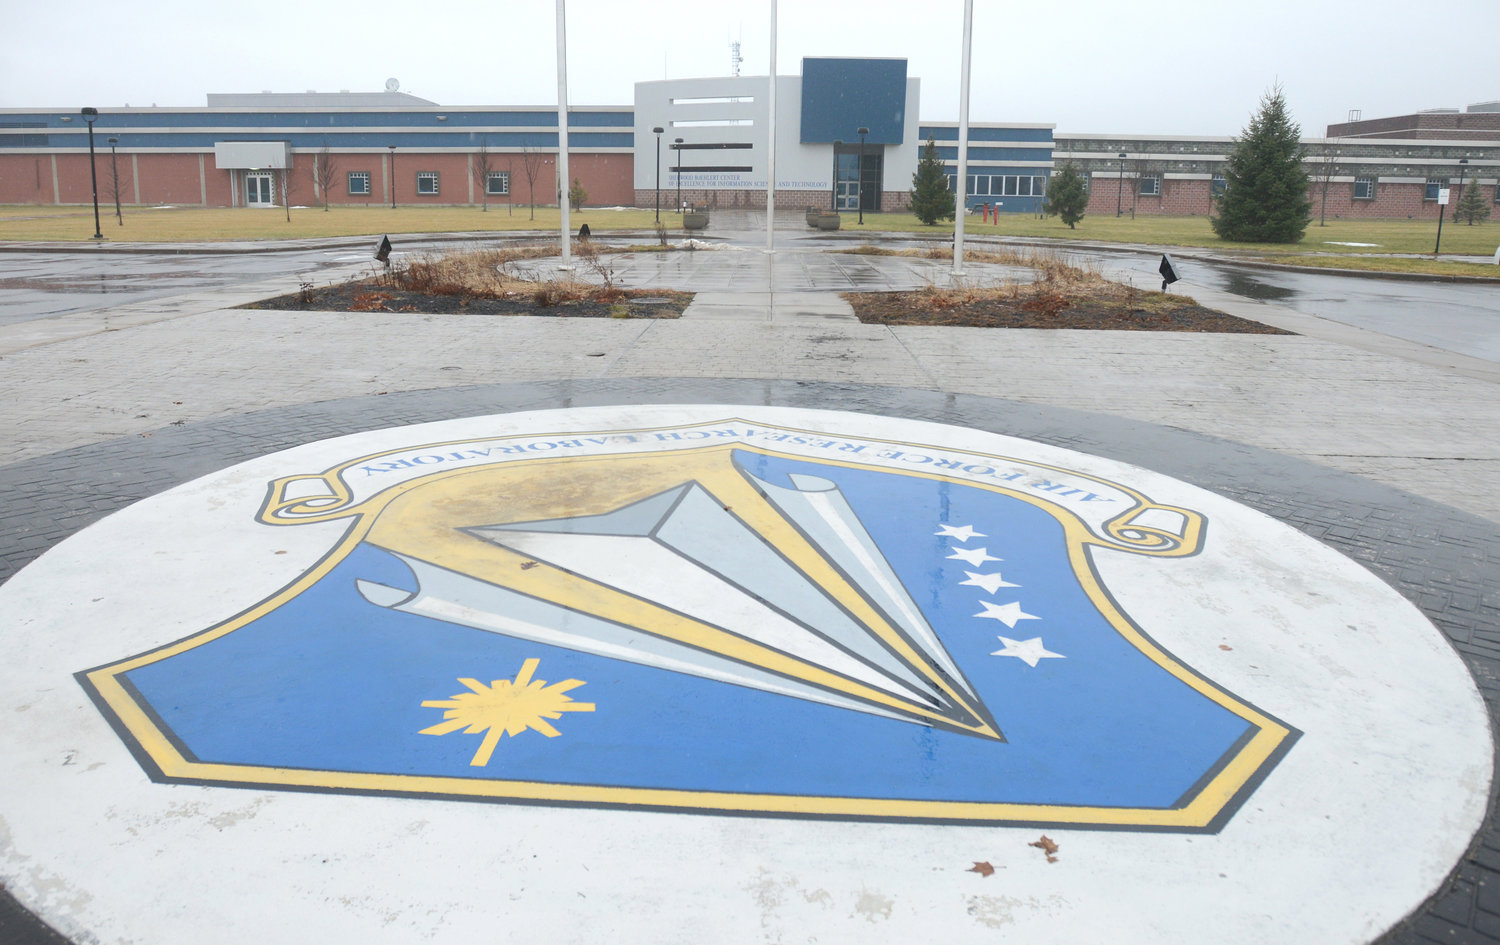 LAB'S IMPACT KEEPS GROWING — An increase in local economic impact and a new high for overall funding received in fiscal 2018 were marked by the Air Force Research Laboratory Information Directorate, whose main entrance at Griffiss park is shown here. The Rome lab's results were noted in an annual economic impact analysis.